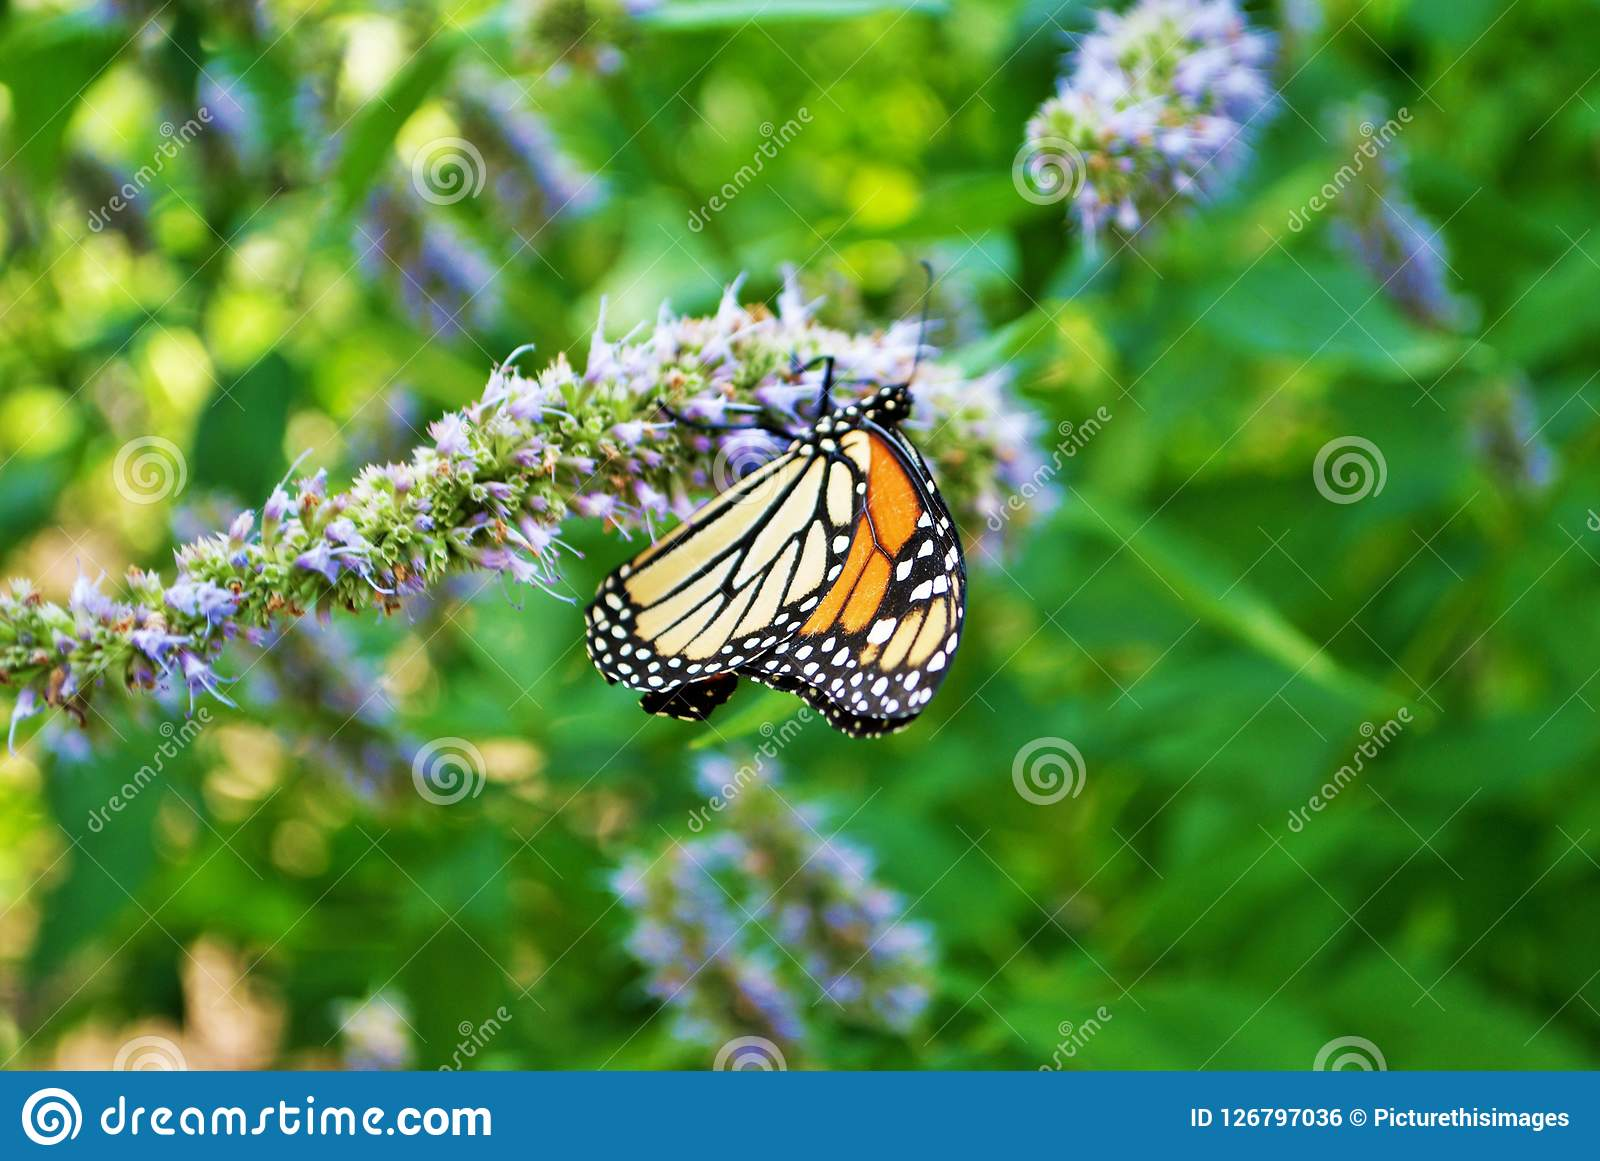 Monarch butterfly with broken wing on a blue Veronica flower